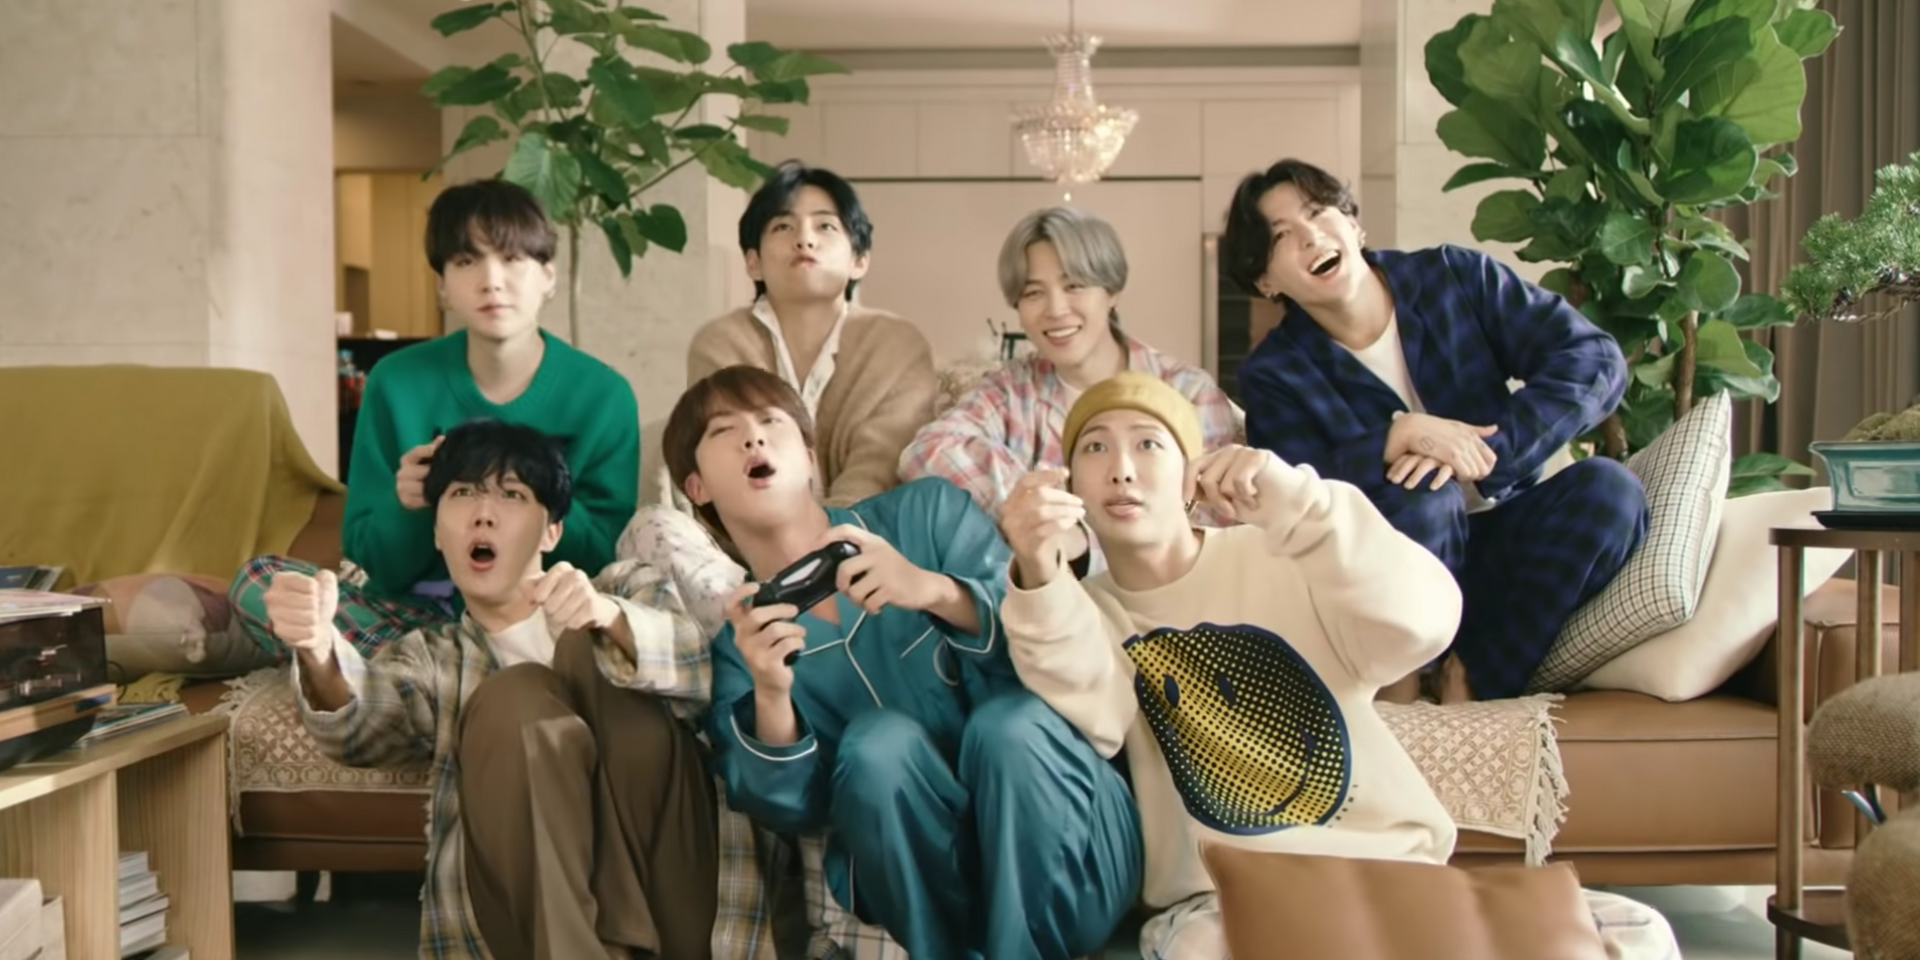 BTS announce TikTok challenge for ARMY version of the 'Life Goes On' music video